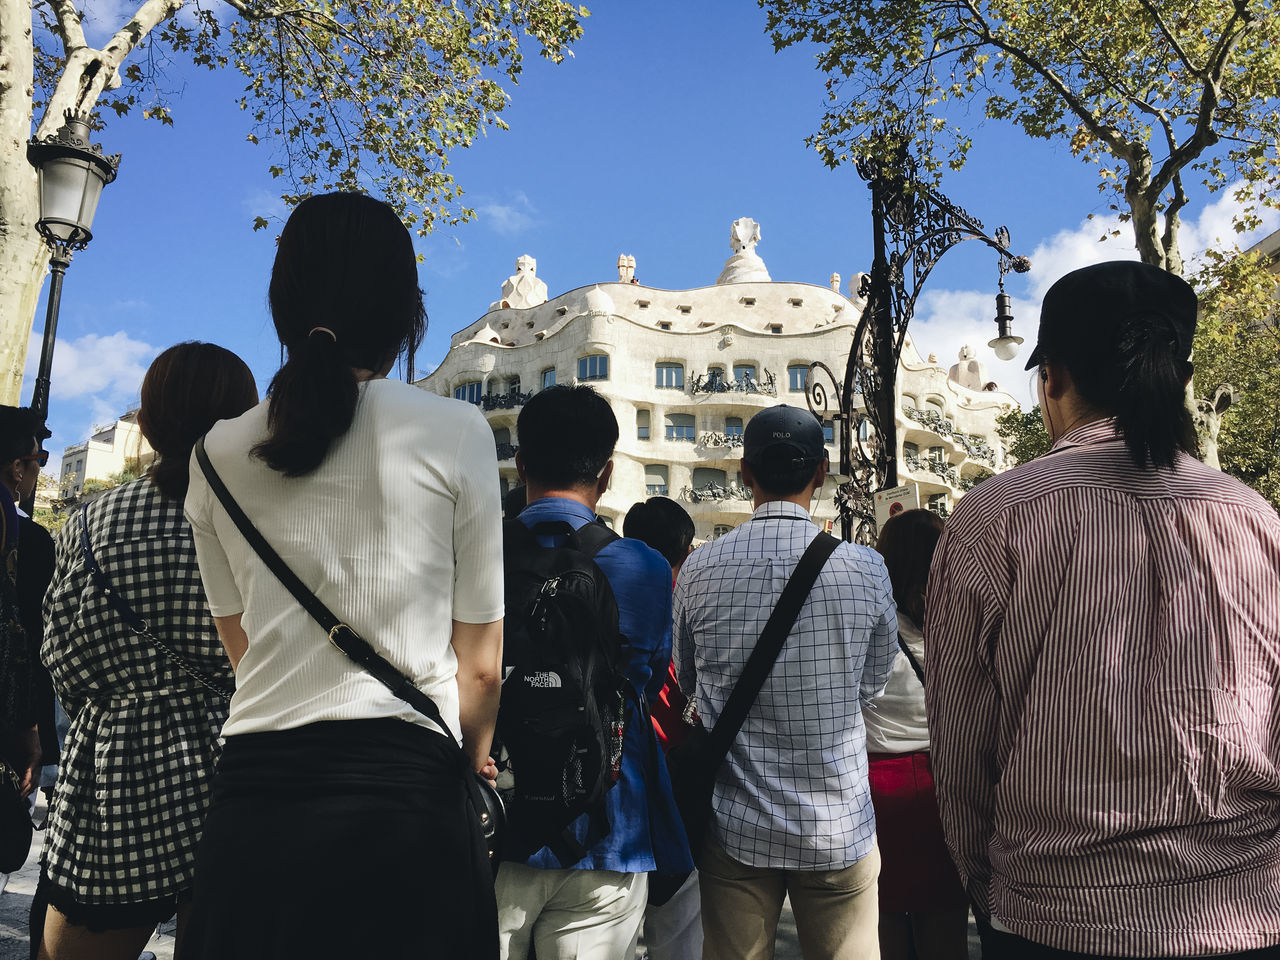 Adult Barcelona City Day Eixample District Gaudi Men Outdoors People Real People Rear View Sky Spirituality Women